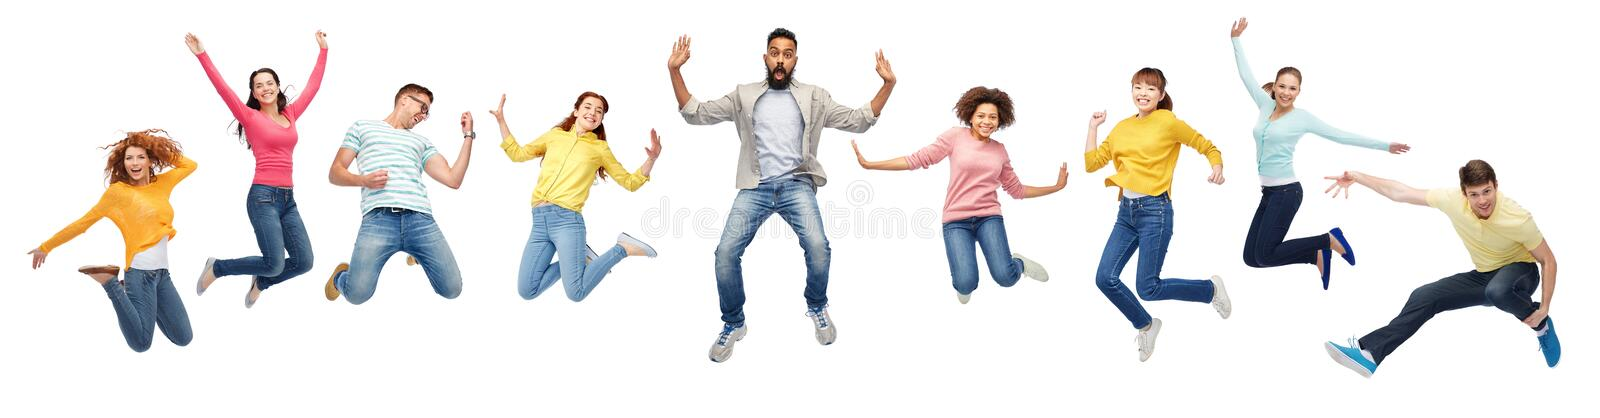 International group of happy people jumping stock photos